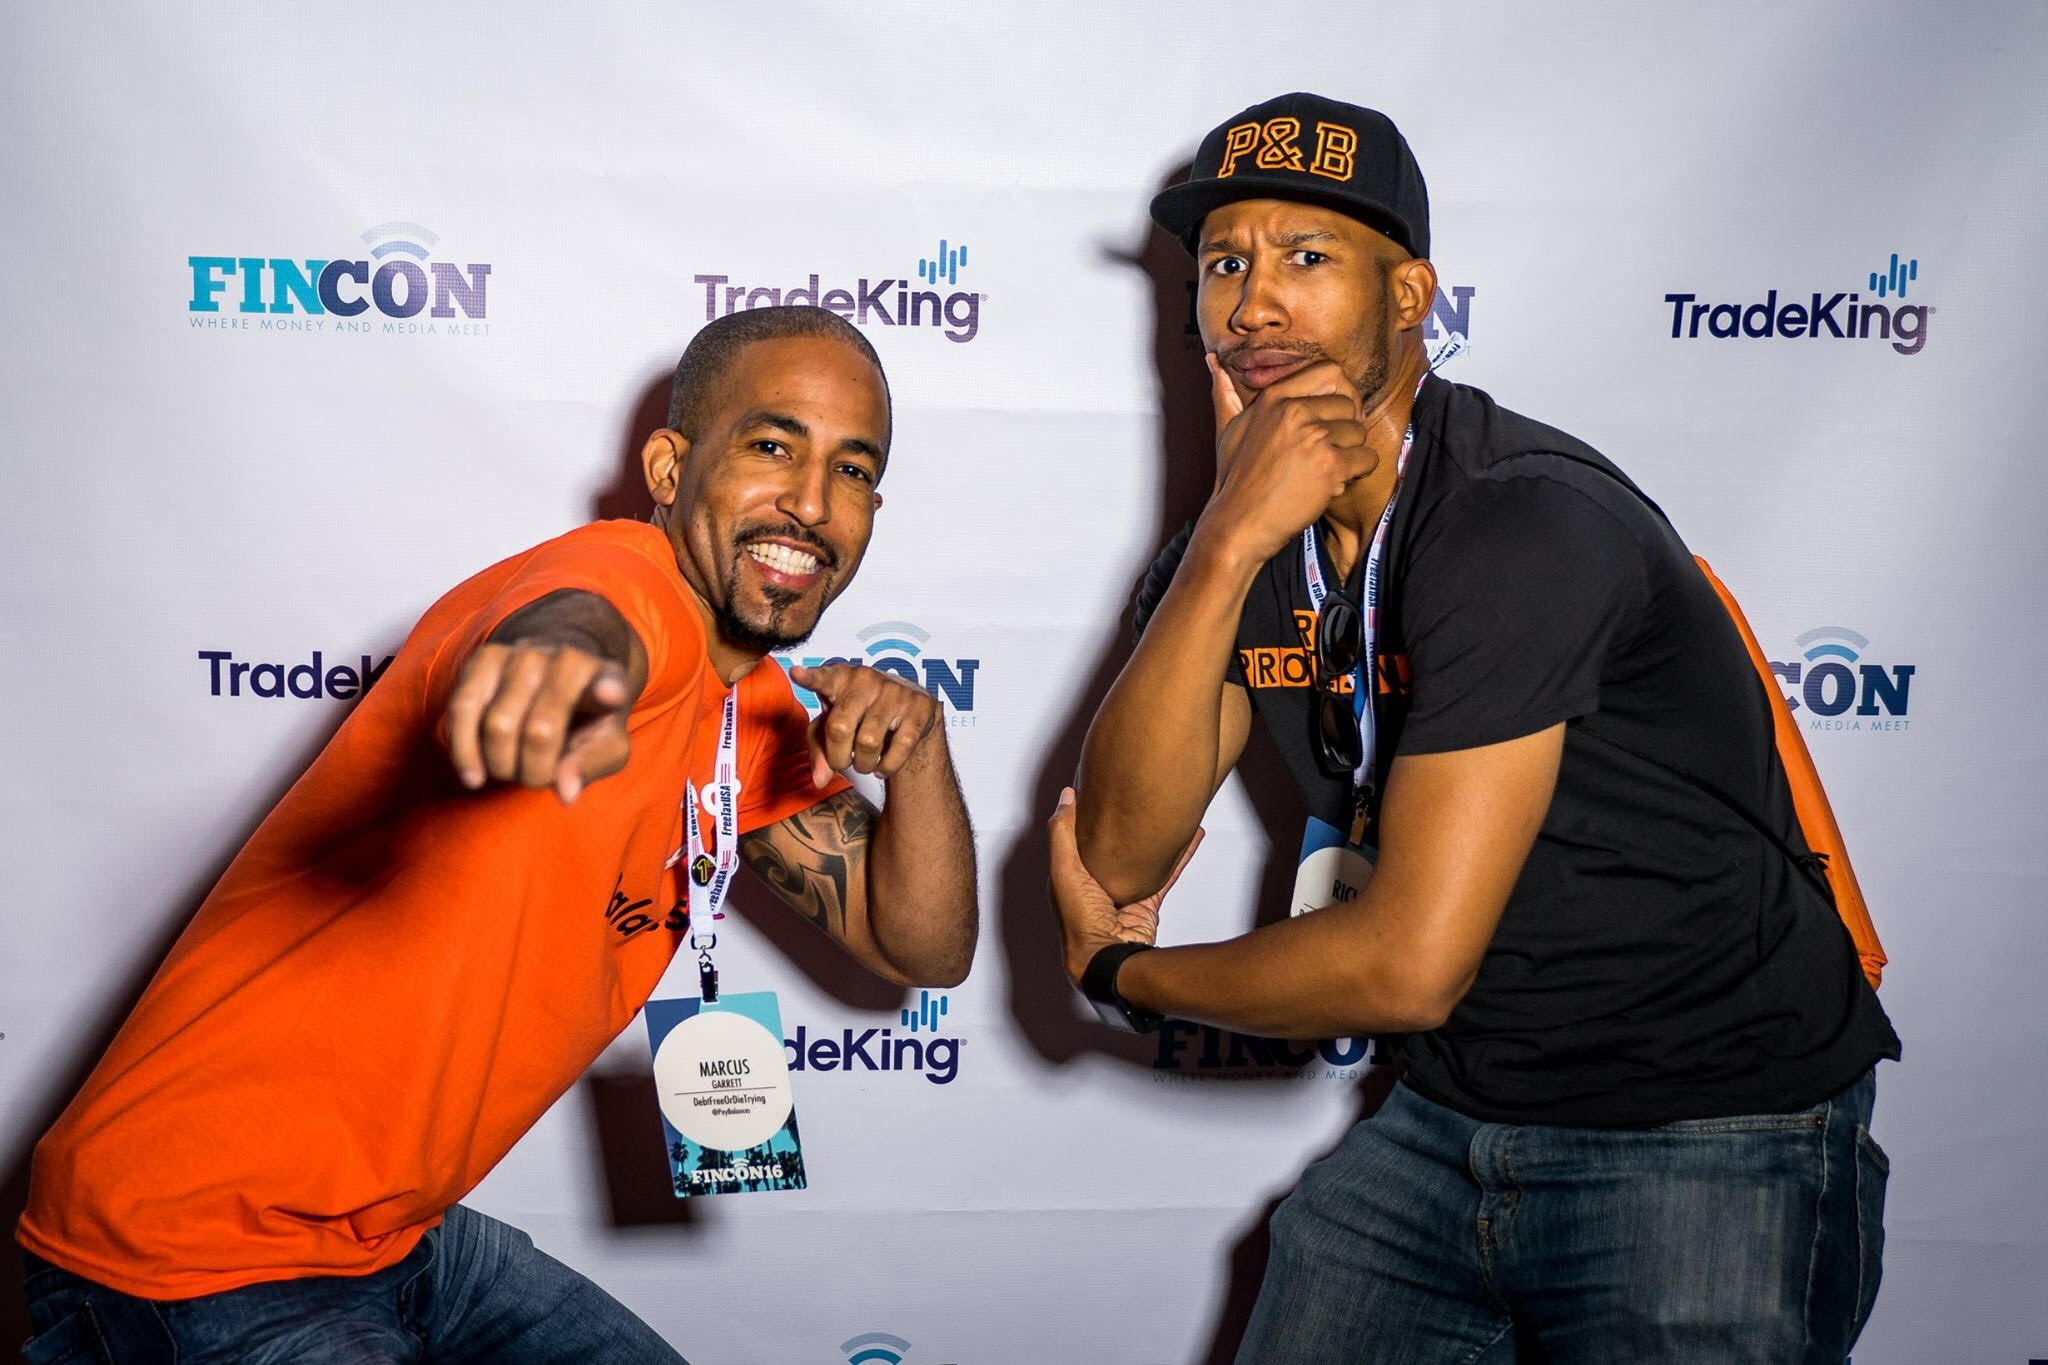 Image: Marcus, and Rich, hosts of the podcast, Paychecks & Balances at FinCon2016